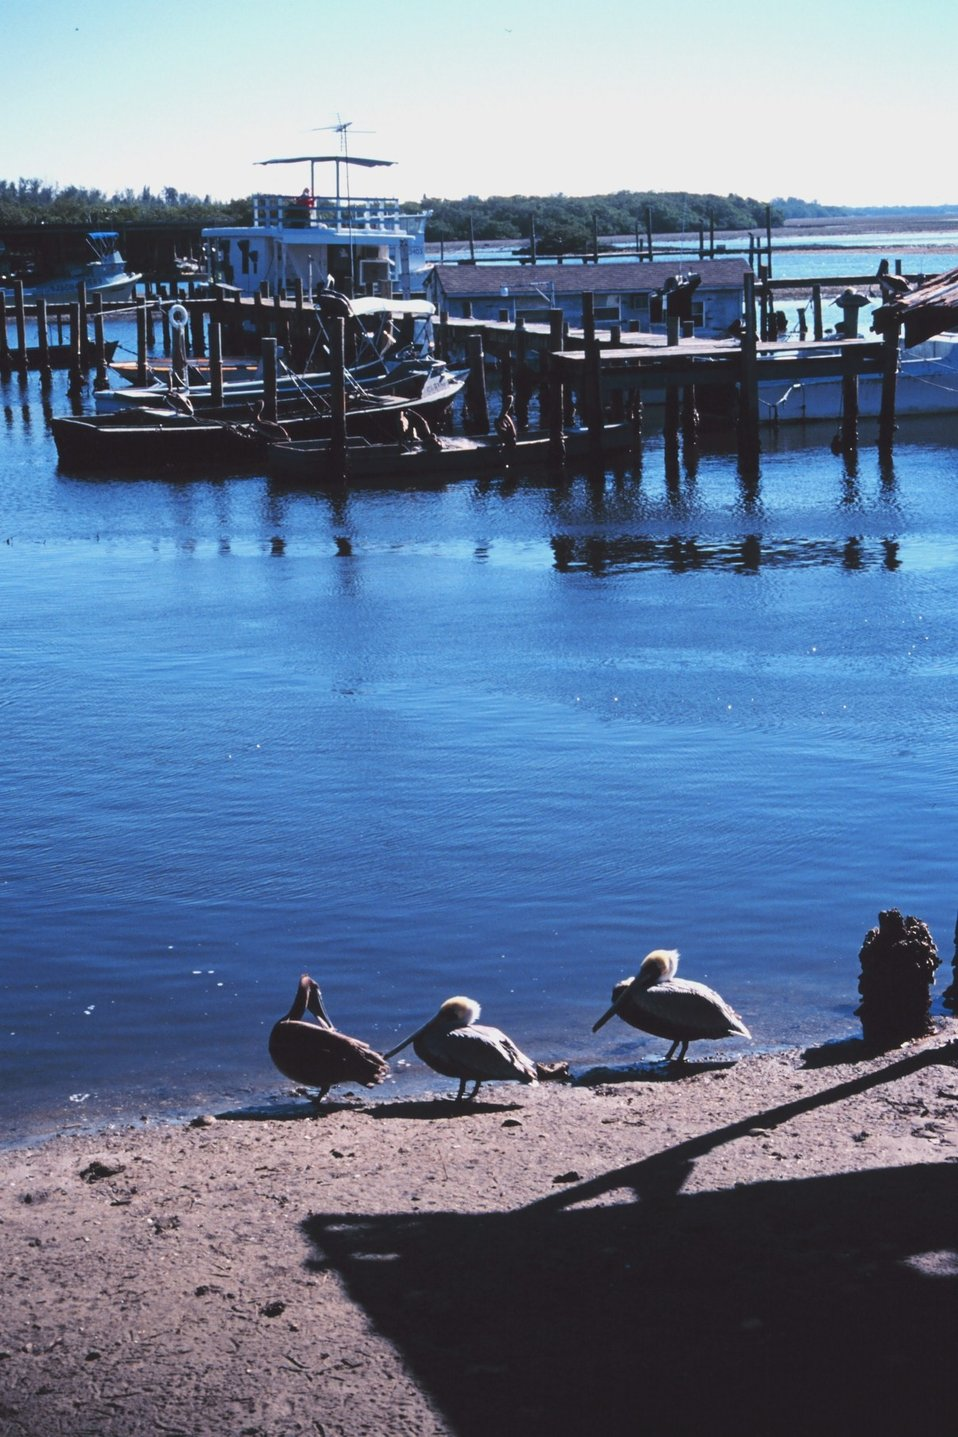 Pelicans and seagulls frequent the A. P. Bell Fish Co.